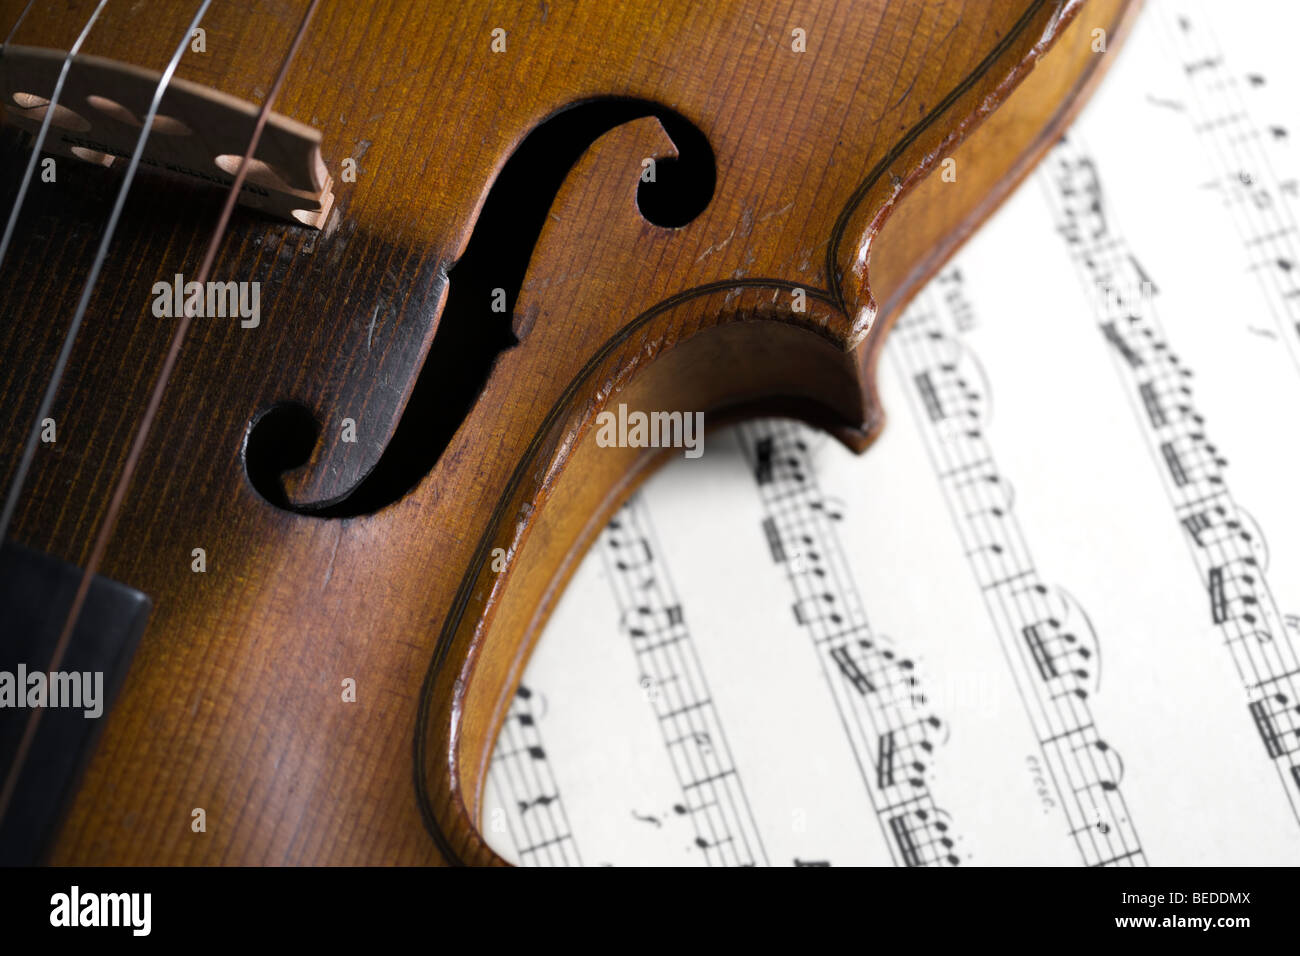 closeup of old violin on sheet music by Mozart Stock Photo